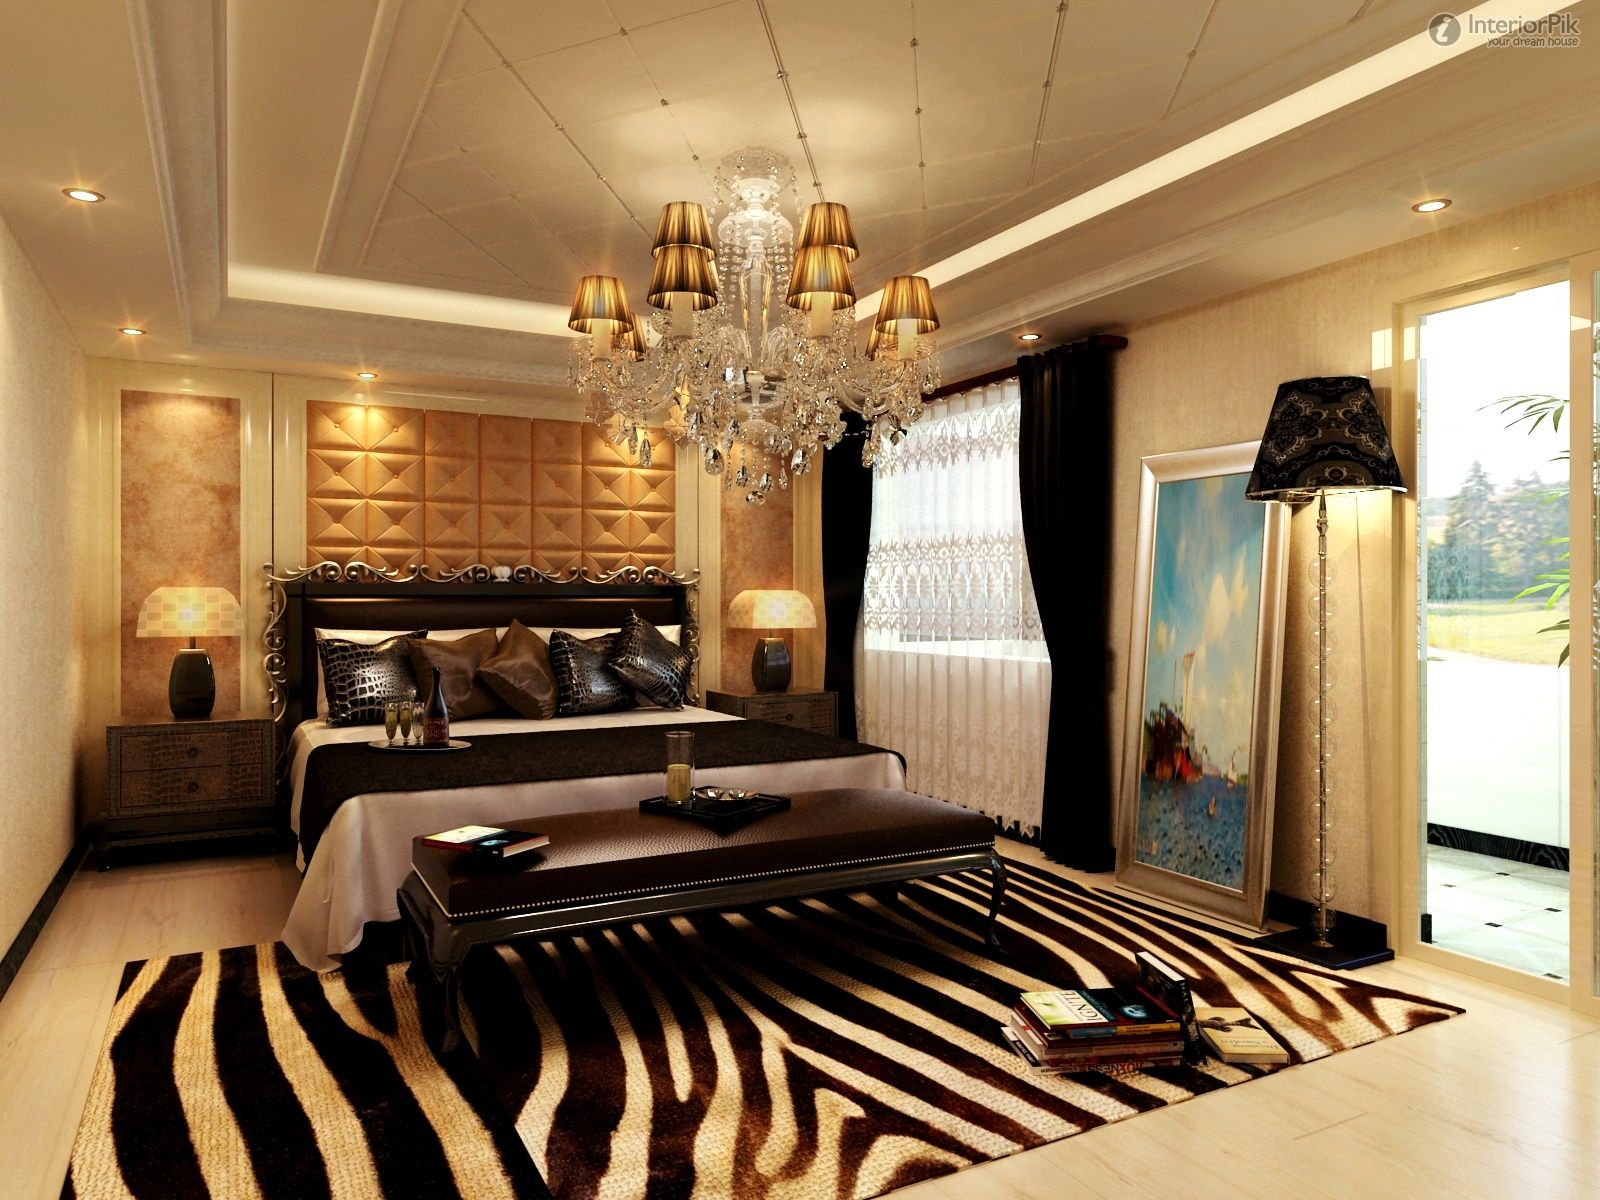 European Bedroom Designs Awesome Modern European Style Master Bedroom Ceiling Decoration Ideas Design Inspiration